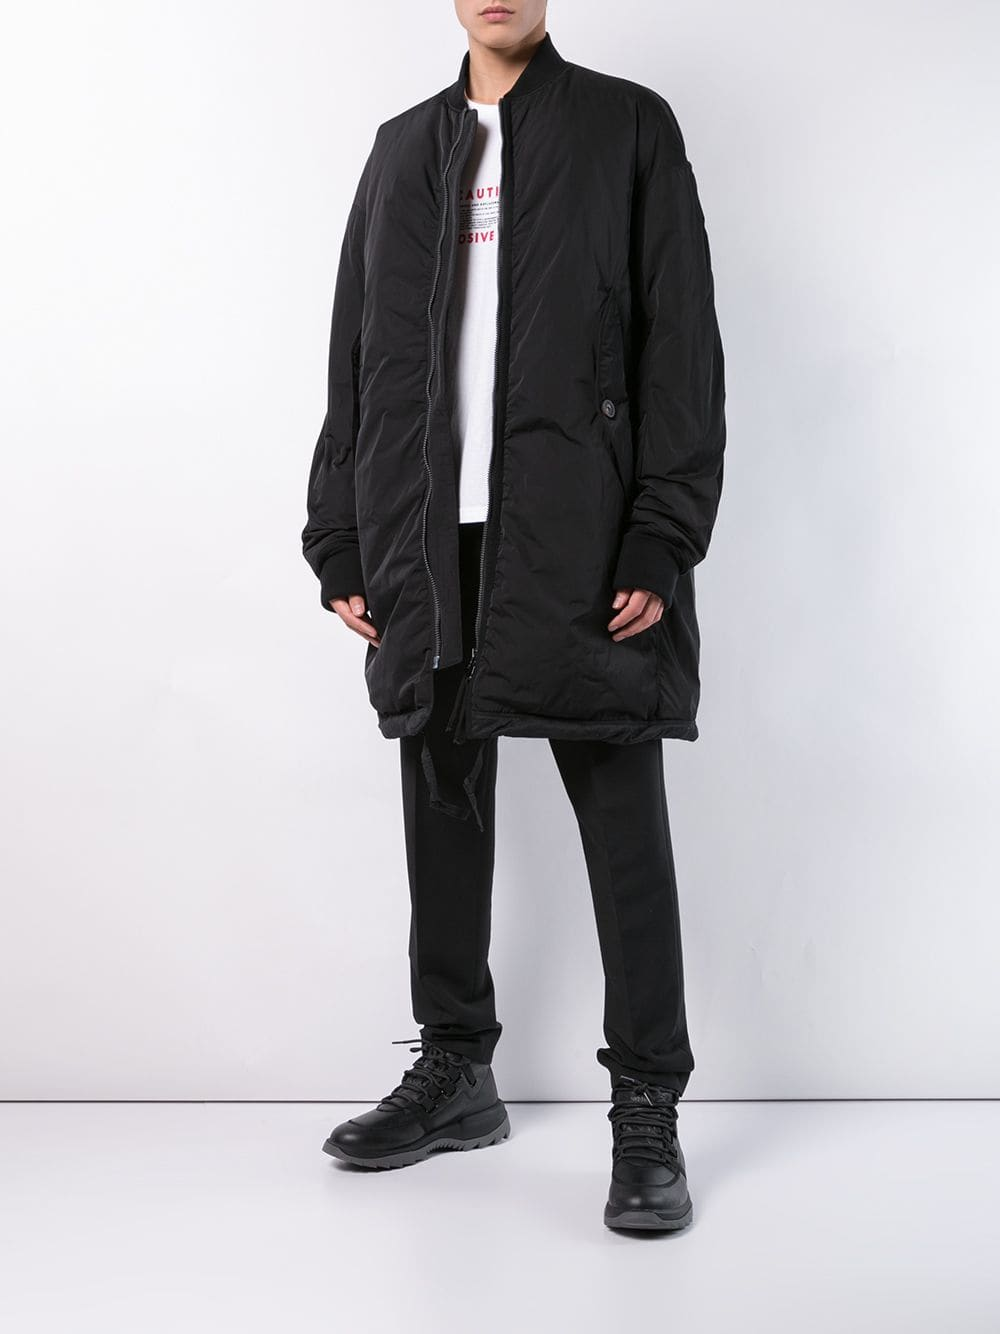 ZIGGY CHEN MEN DOWN BOMBER JACKET